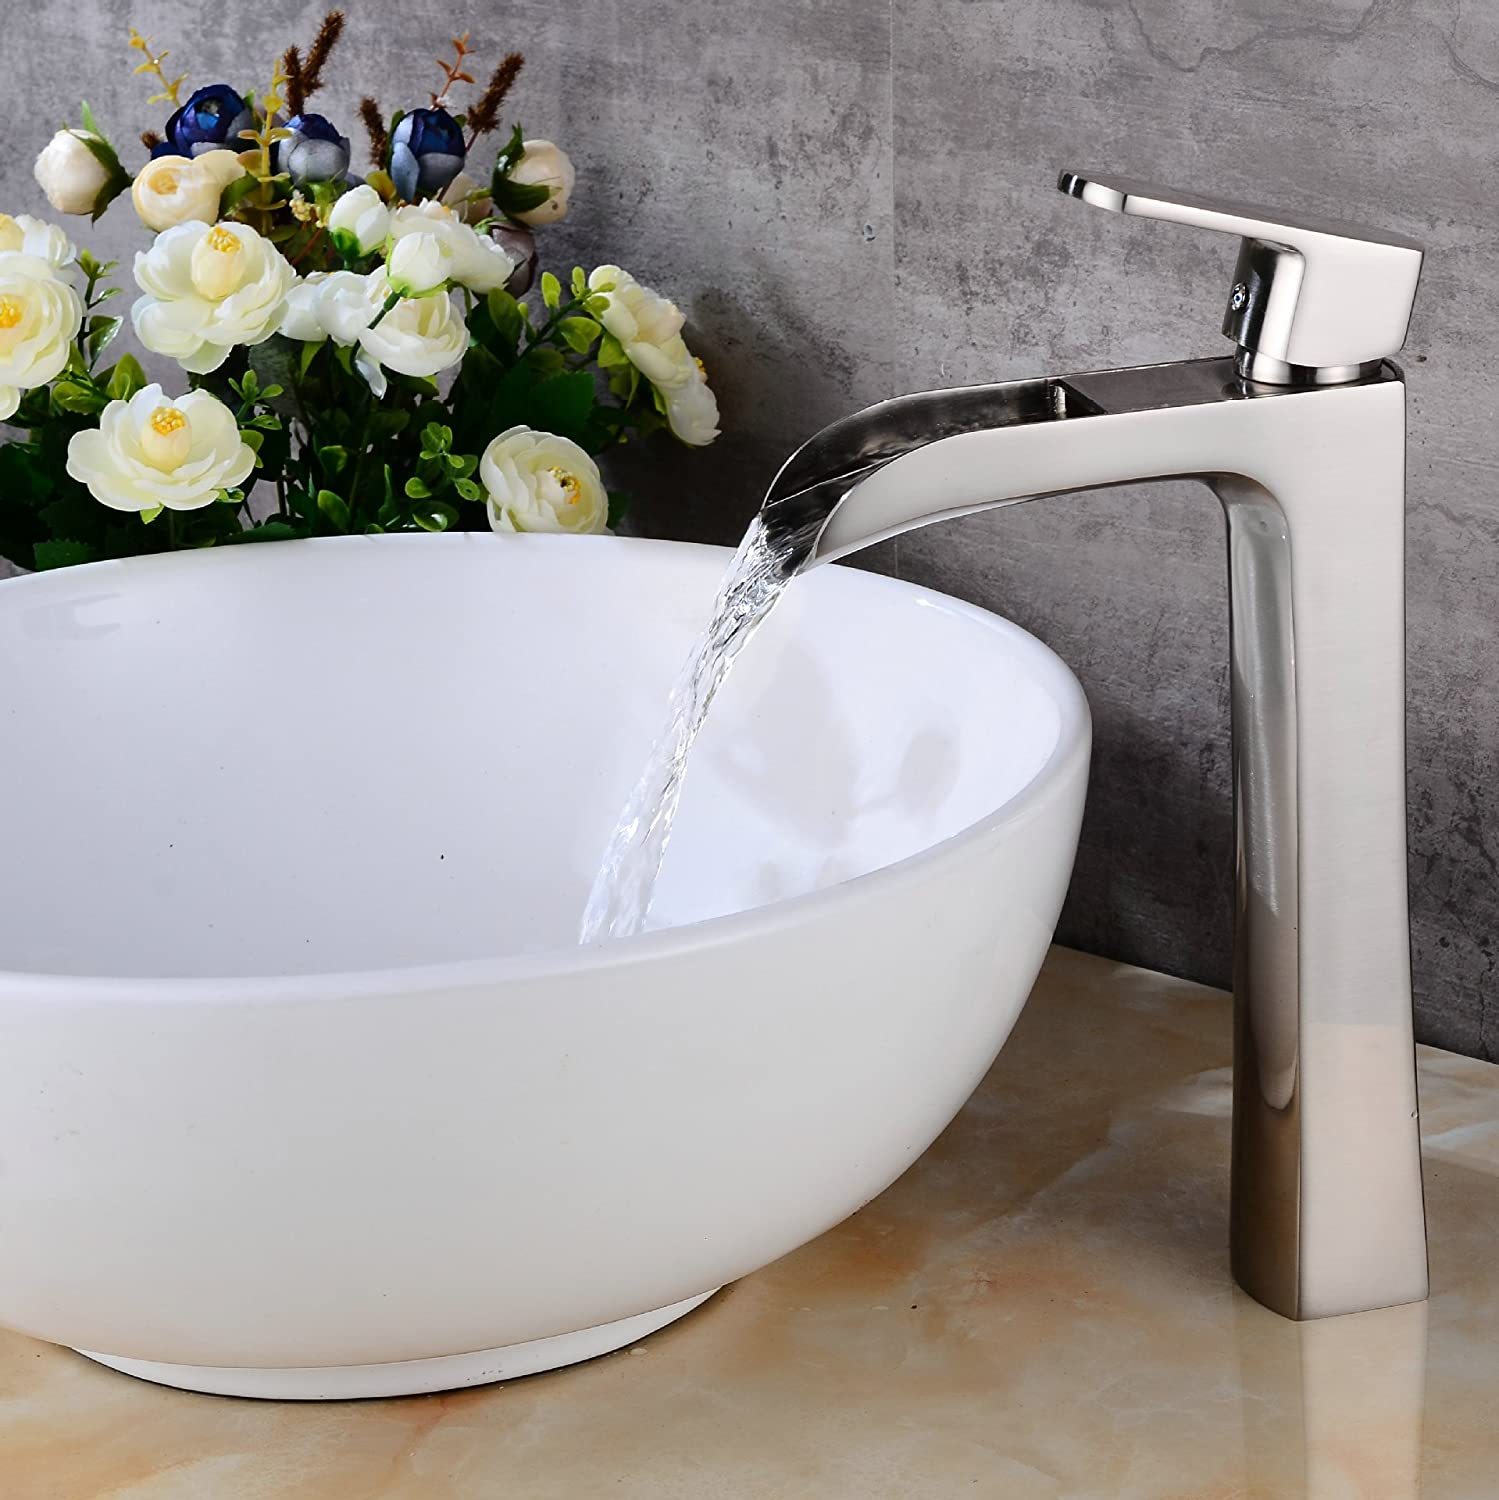 AOEIY Single Hole hot and Cold Modern Taps Kitchen Brass Faucet Bathroom Sink Basin Waterfall Tap Mixer Water Washroom Bath Tub Shower